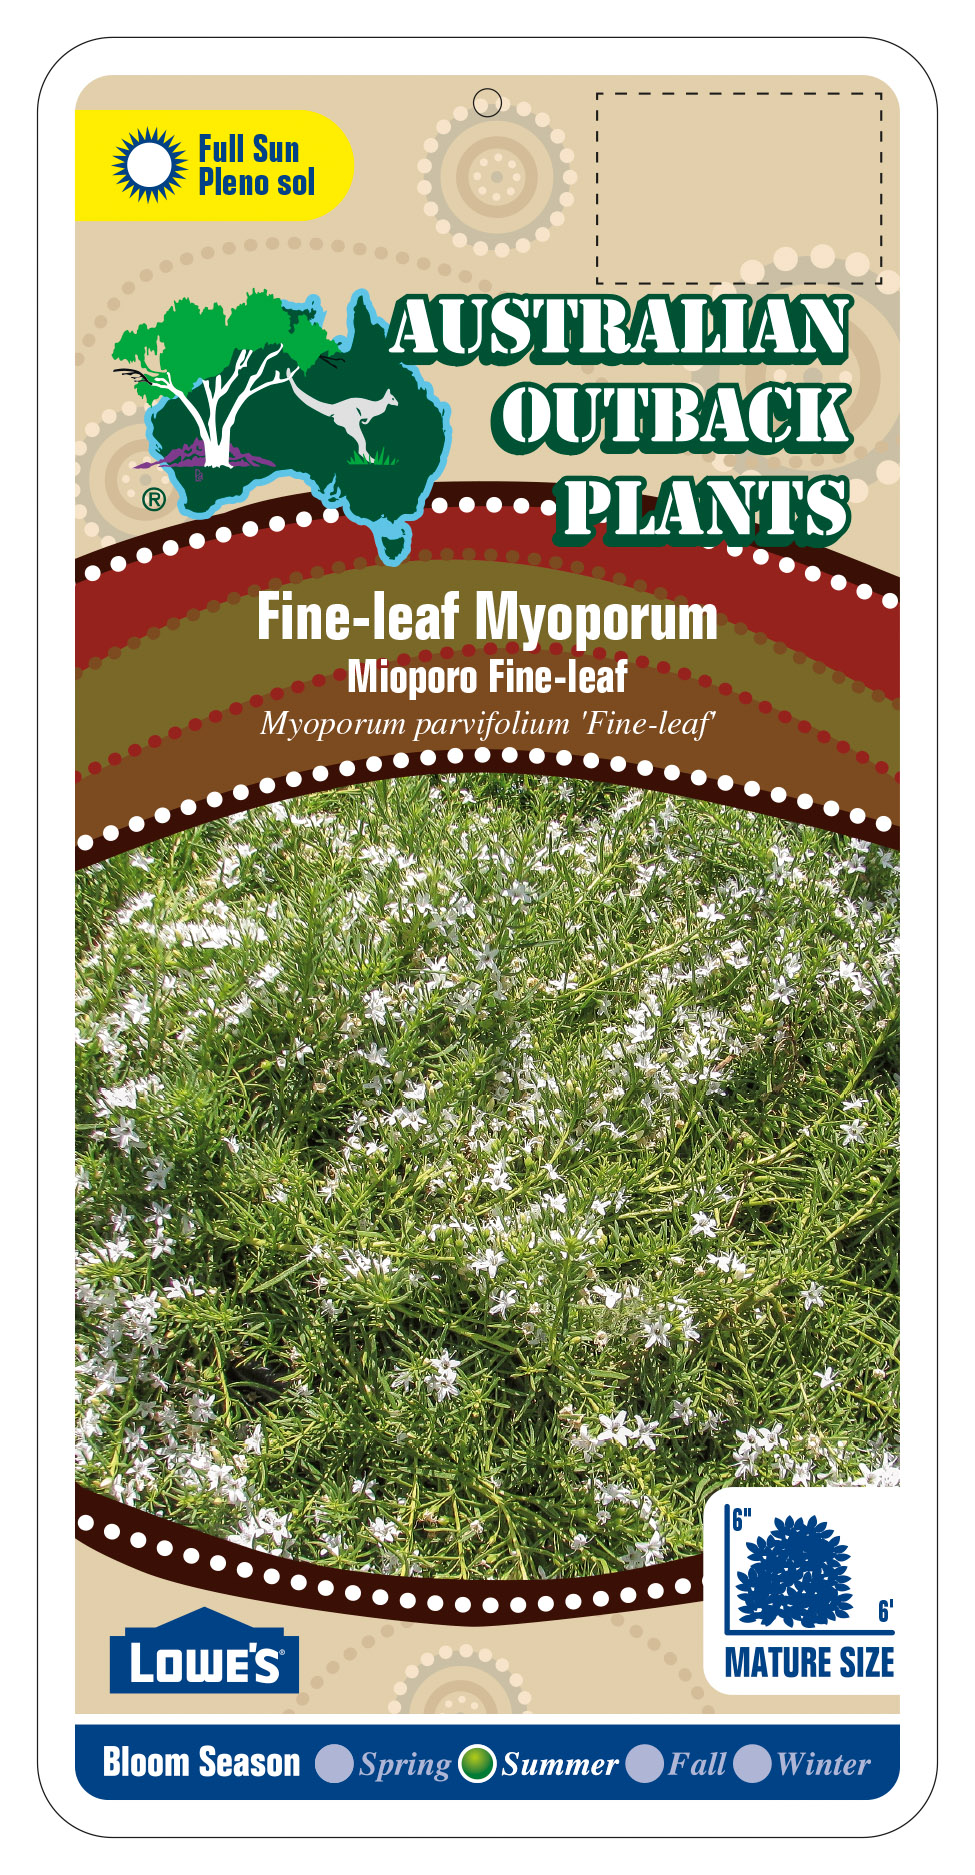 94385_FRONTFine-Leaf-Myoporum.jpg